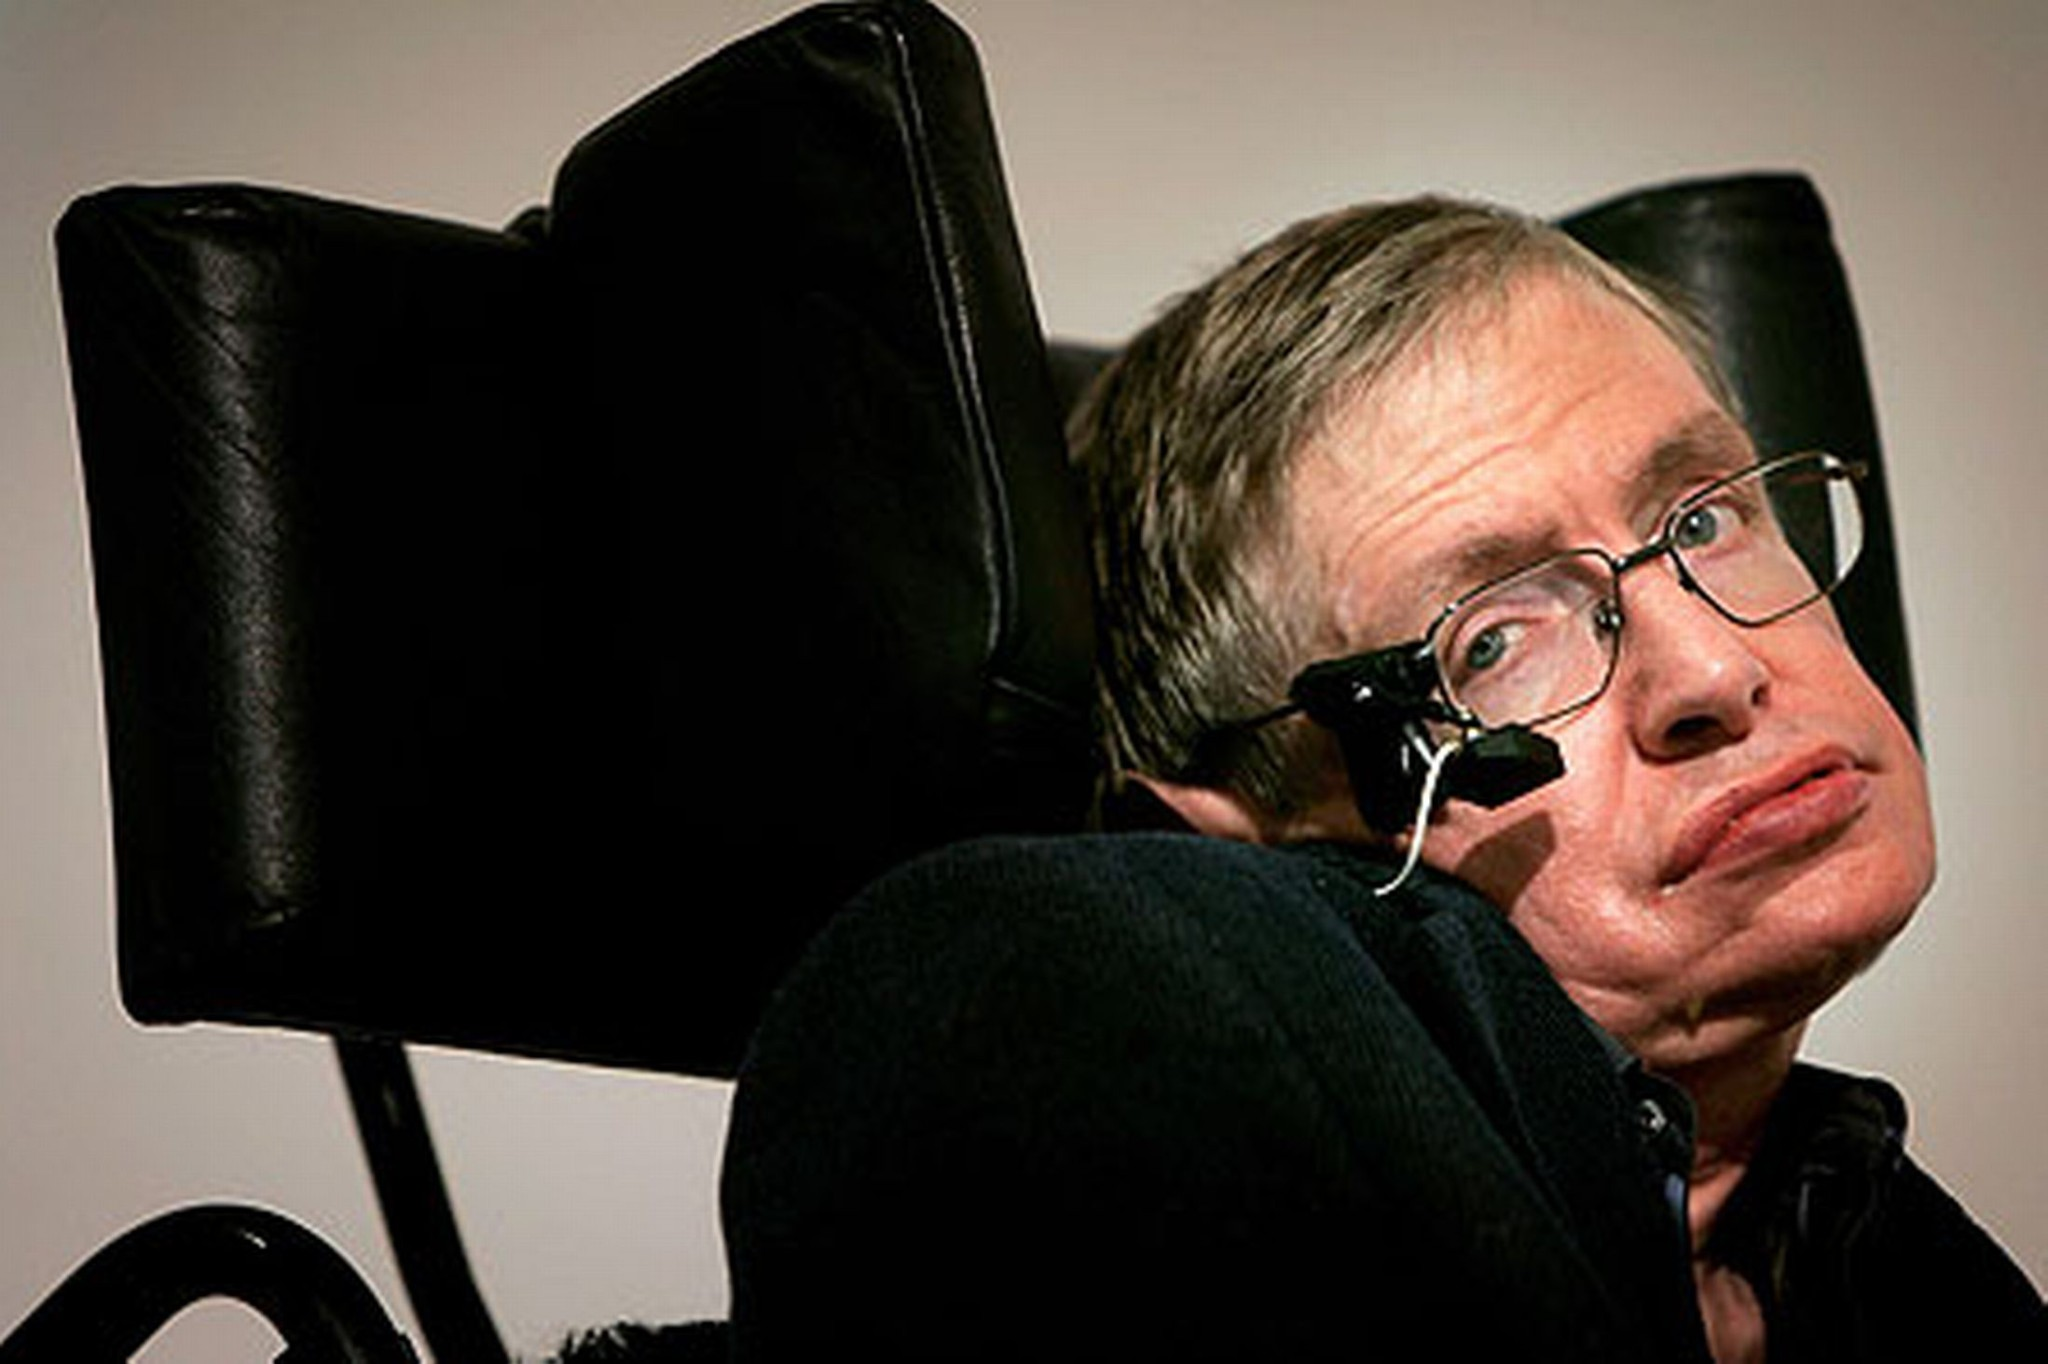 Brian Cox, British Physicist, British Physicist Stephen Hawking, Chris McLeod, English physicist, Institute of Trade Mark Attorneys, president of the Institute of Trade Mark Attorneys, The Sunday Times